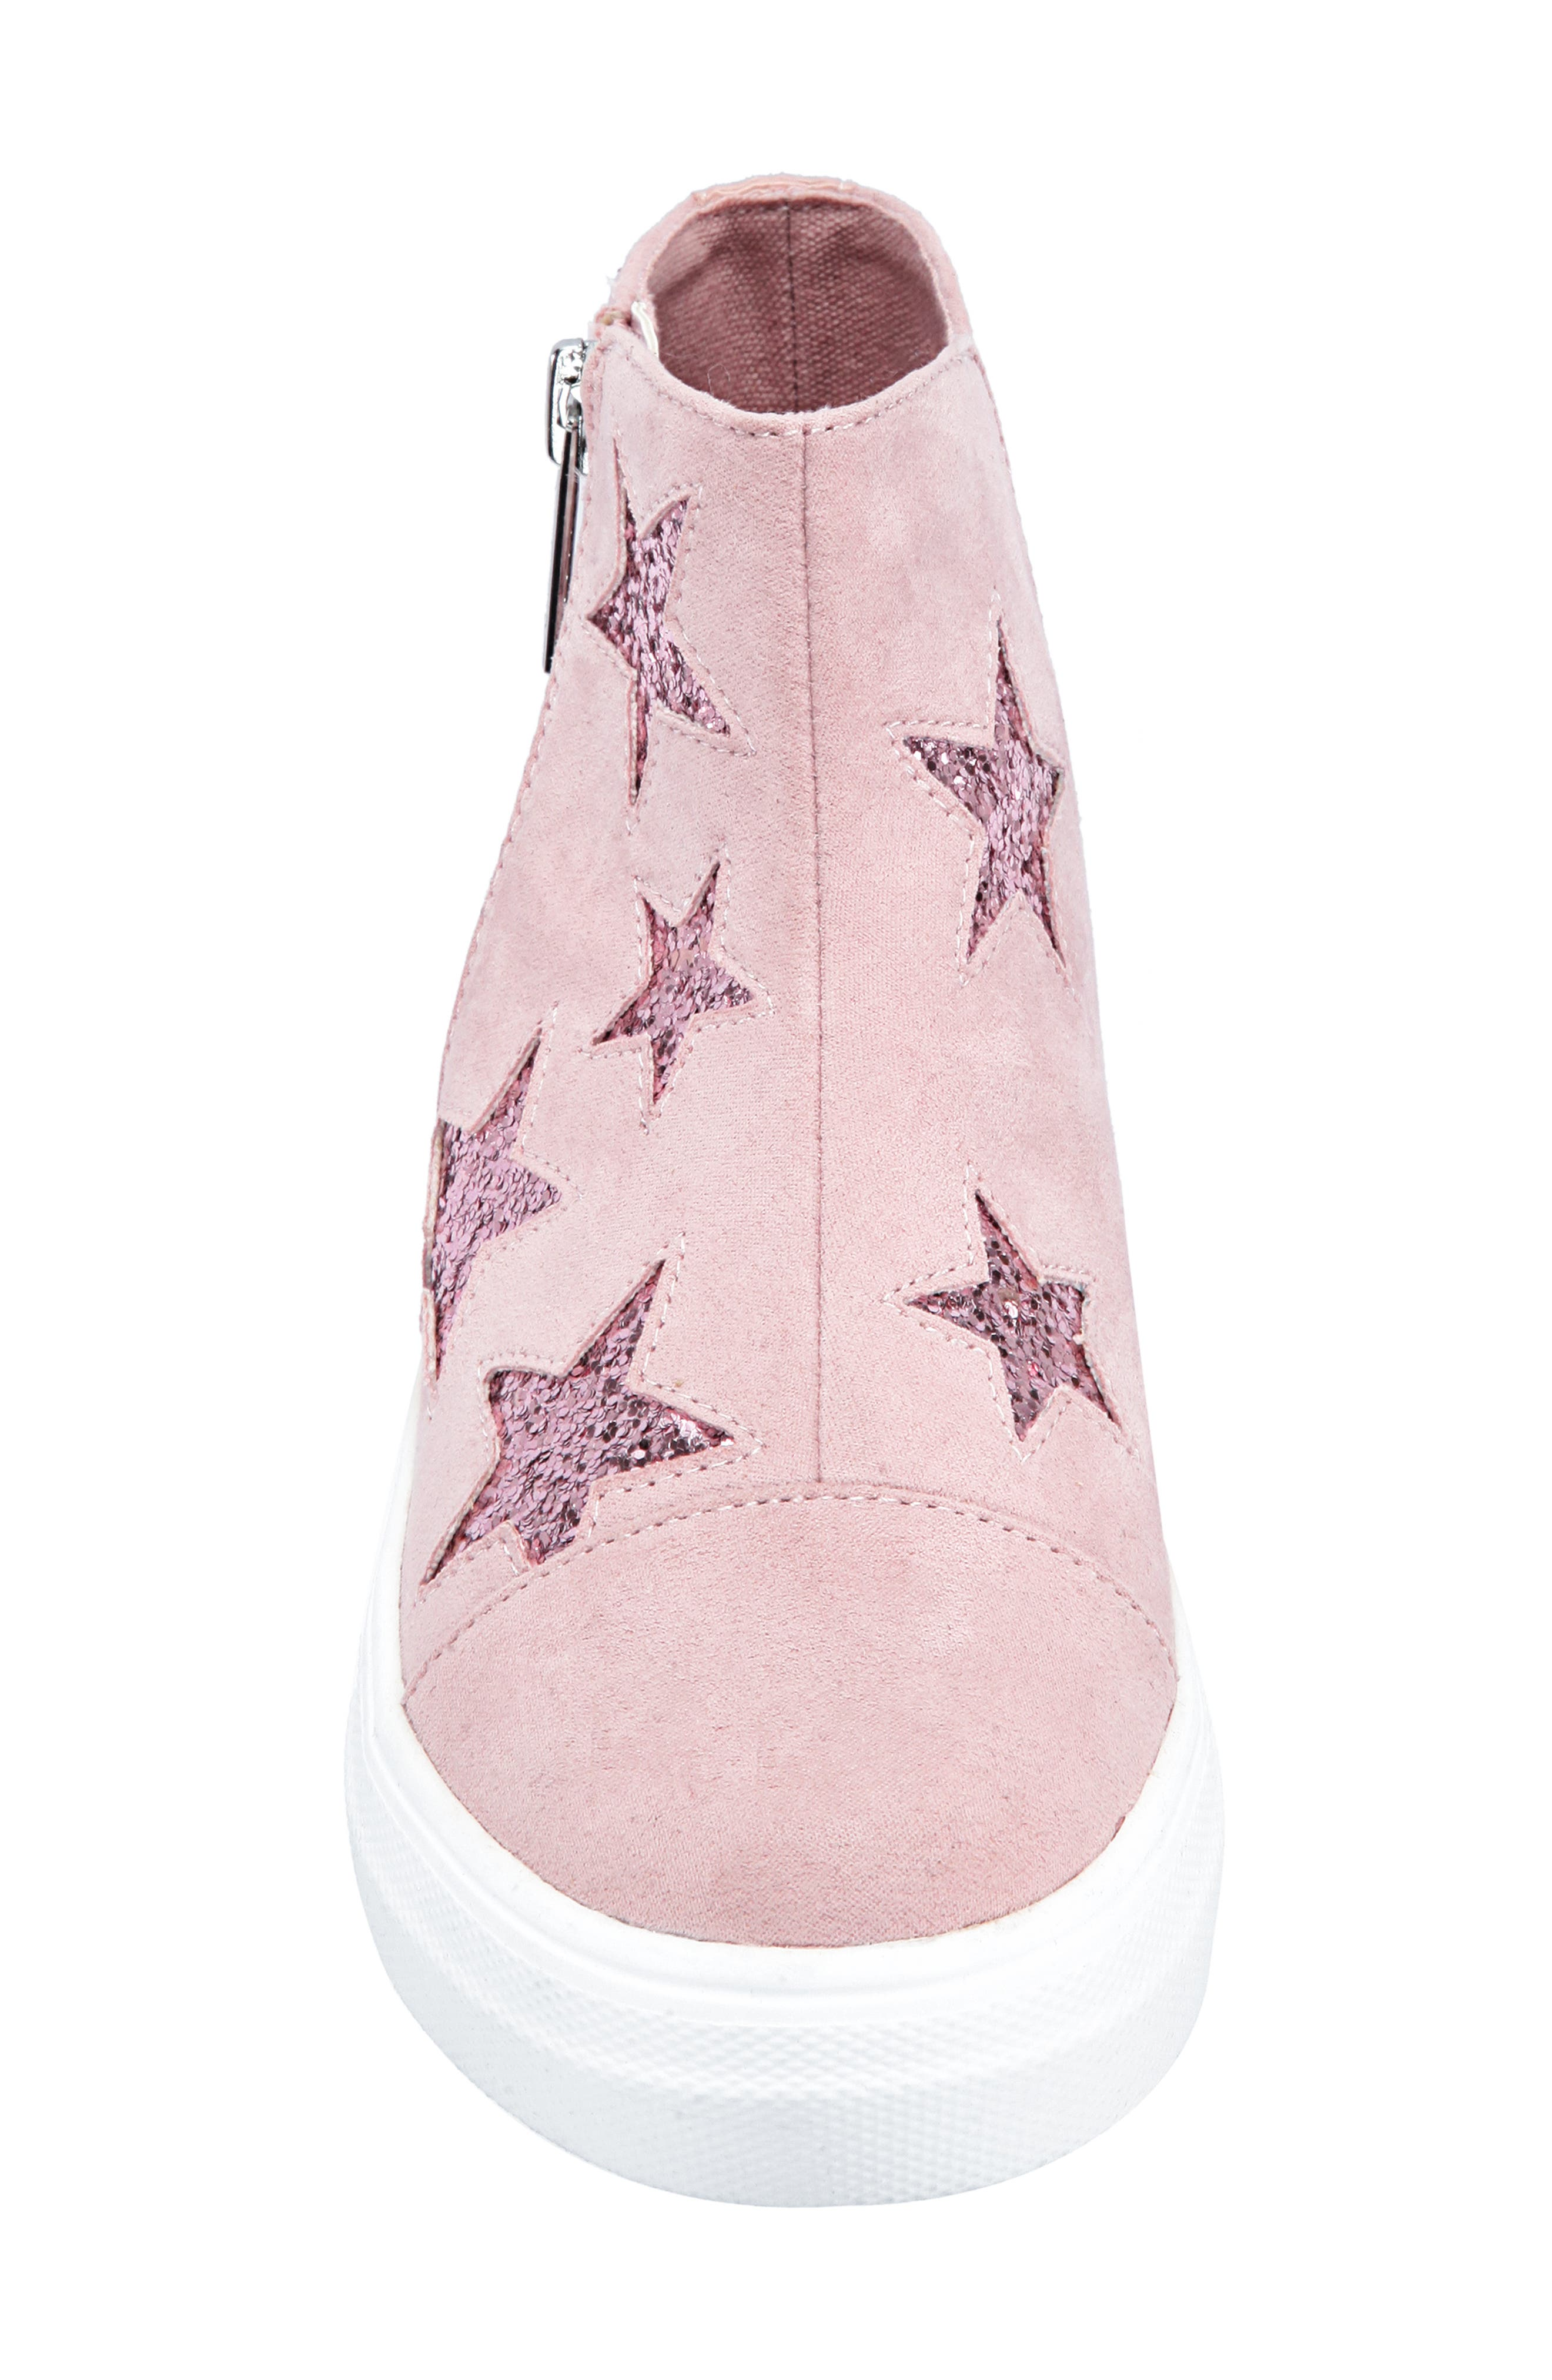 Jacqui Glitter High Top Sneaker,                             Alternate thumbnail 4, color,                             BLUSH MICRO SUEDE